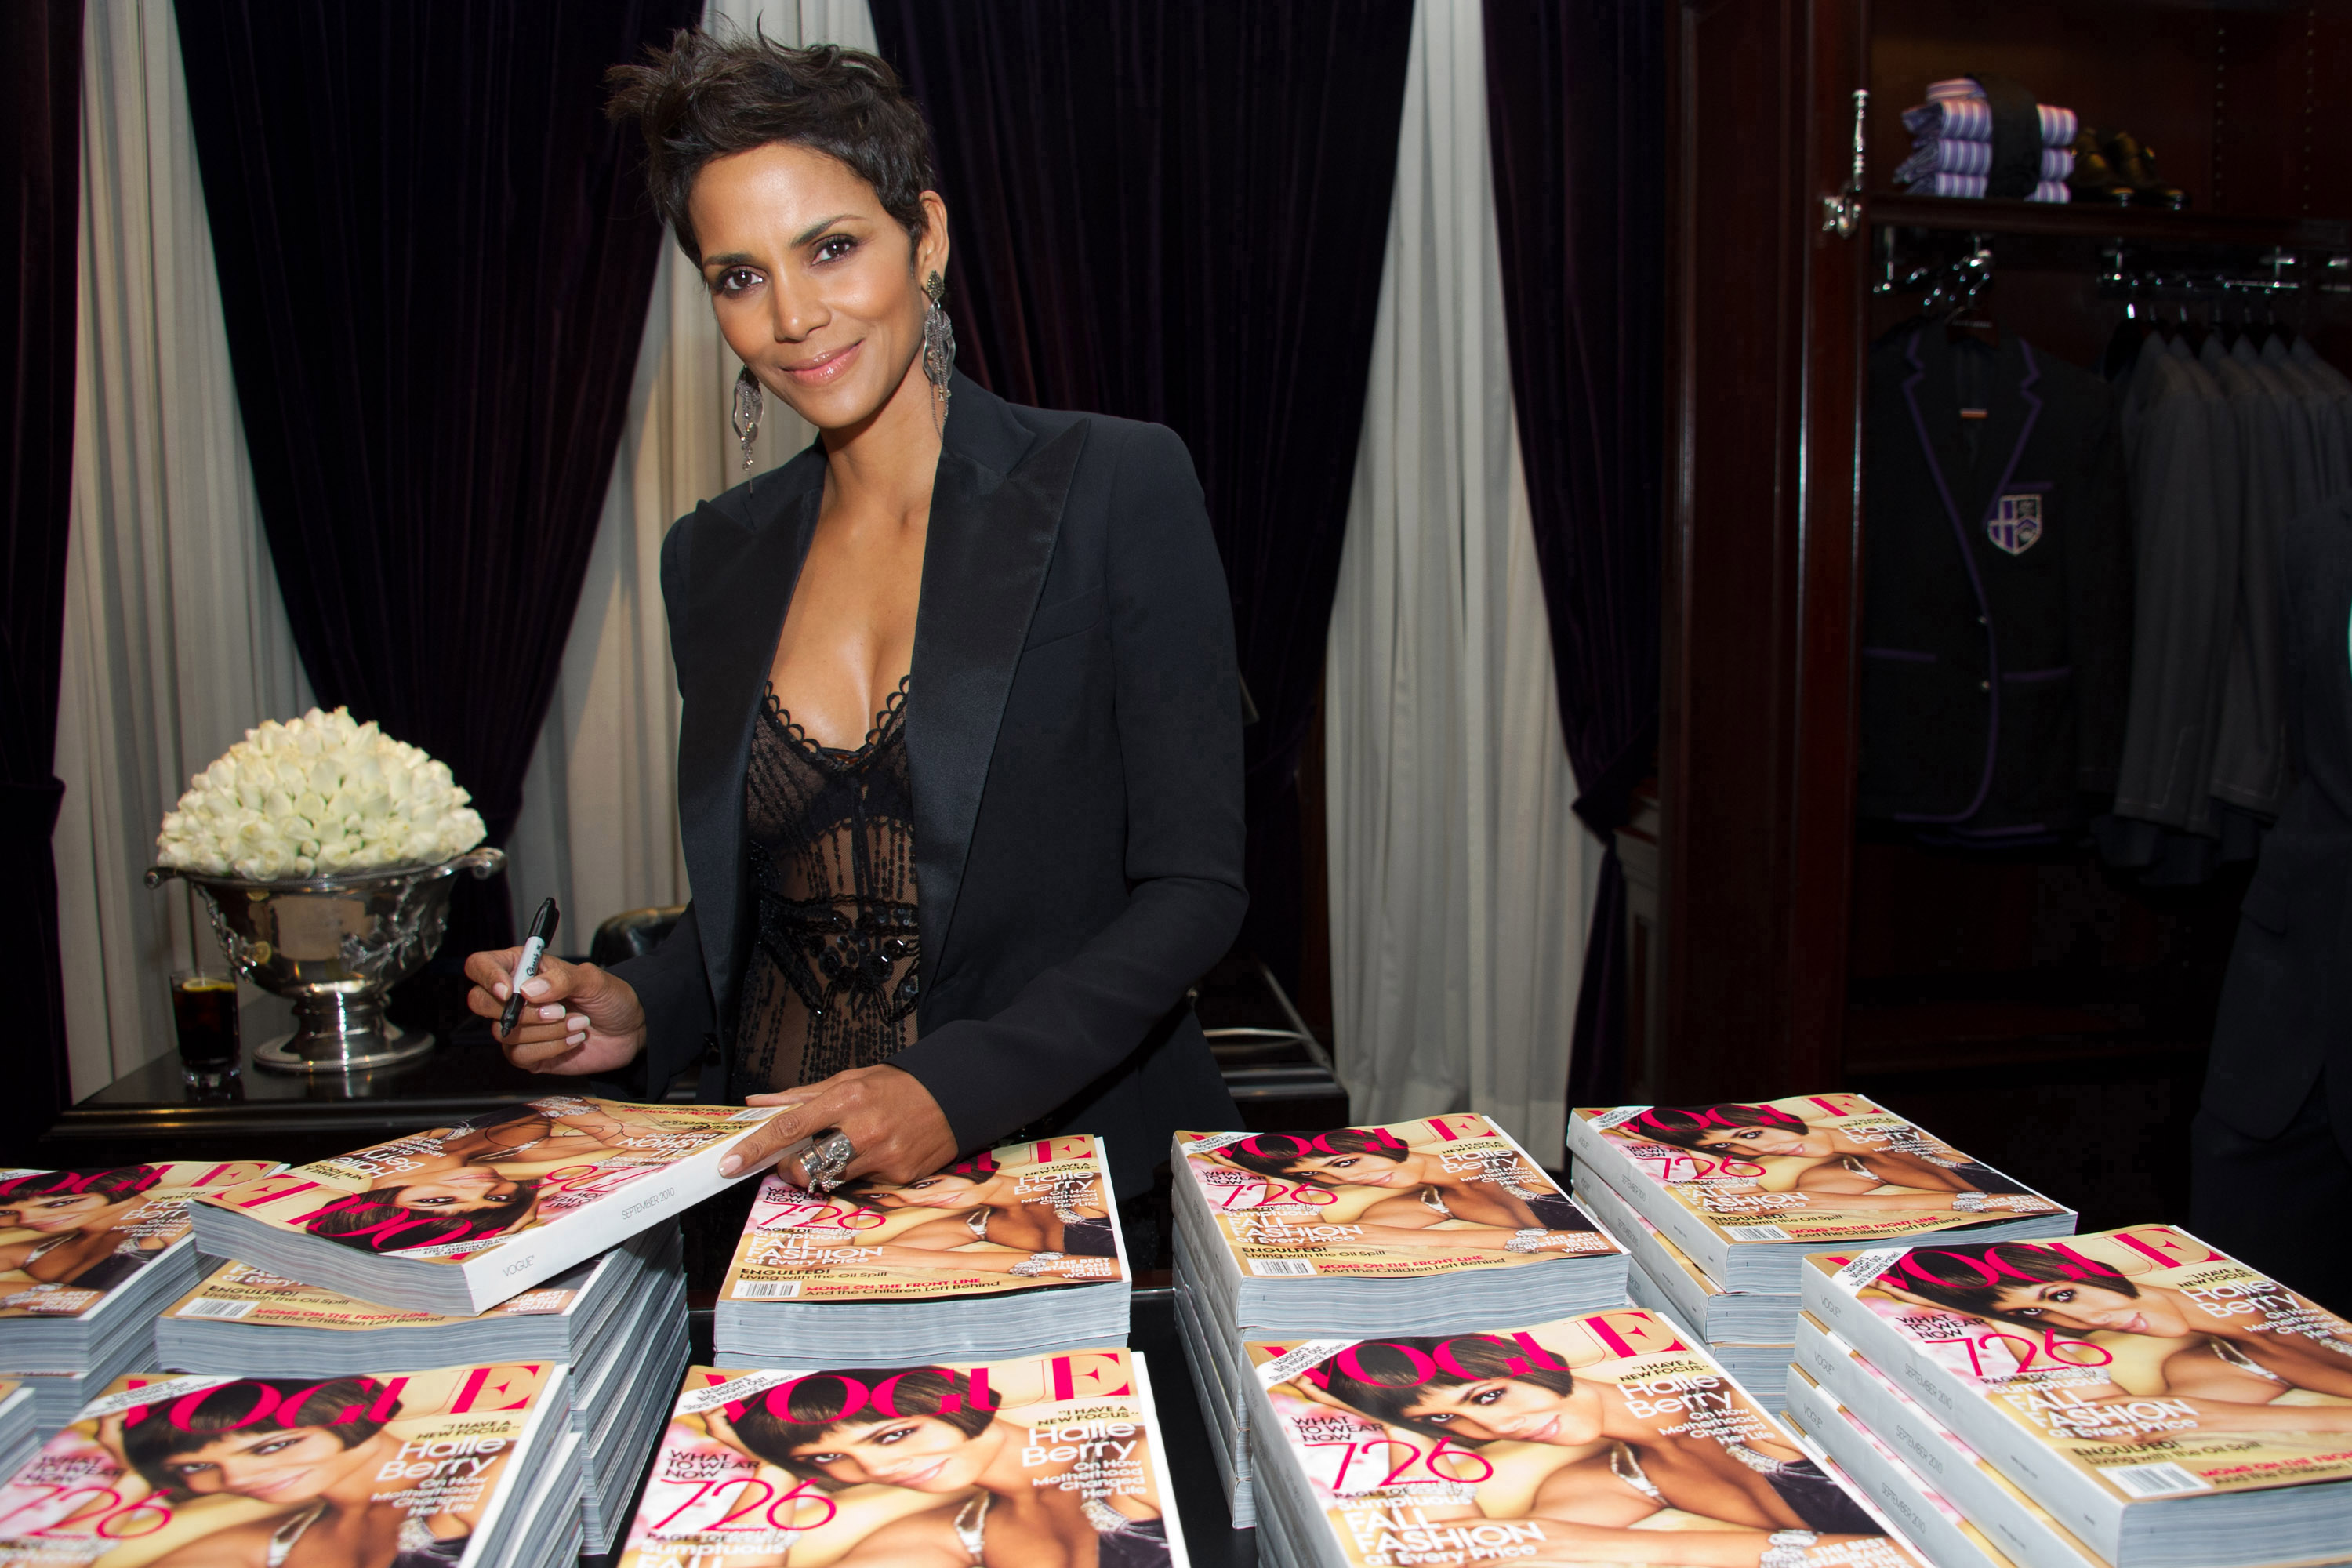 Halle Berry signs copies of her Vogue magazine cover at the Ralph Lauren Madison Avenue store for Fashion's Night Out in New York, New York on Friday.